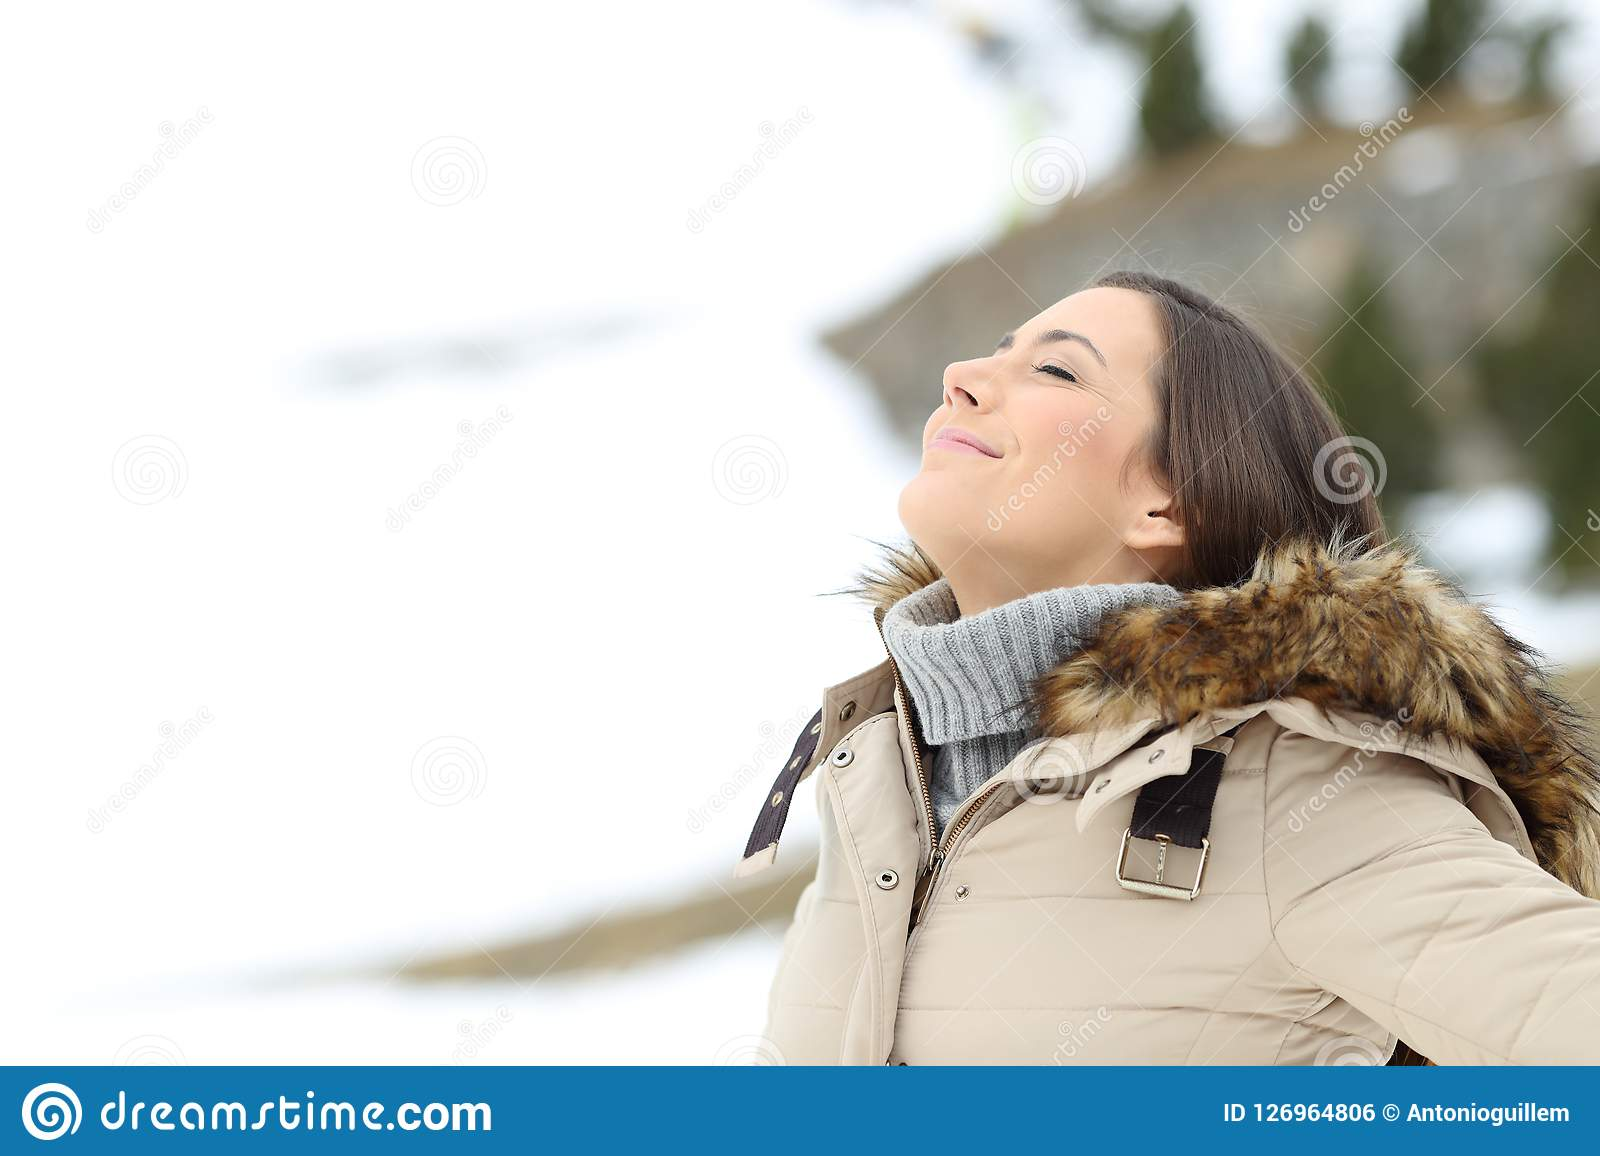 Lady Breathing Fresh Air On Winter Holiday Stock Photo